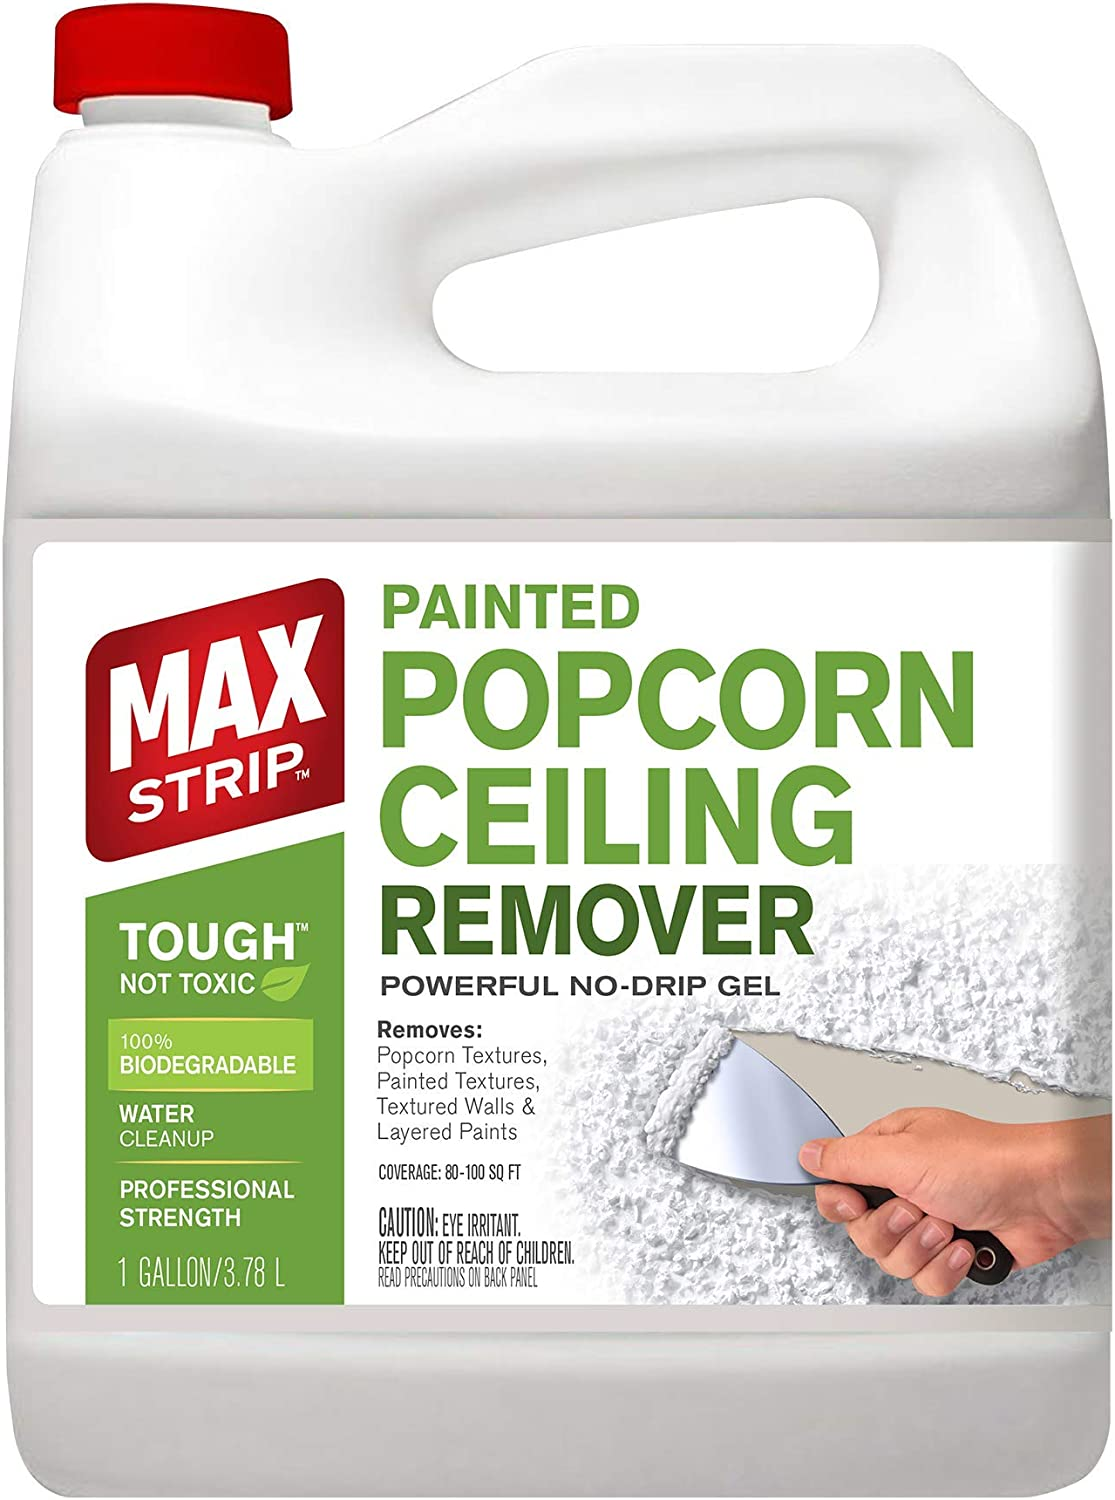 MAX Strip Popcorn Ceiling Remover 1 Gallon